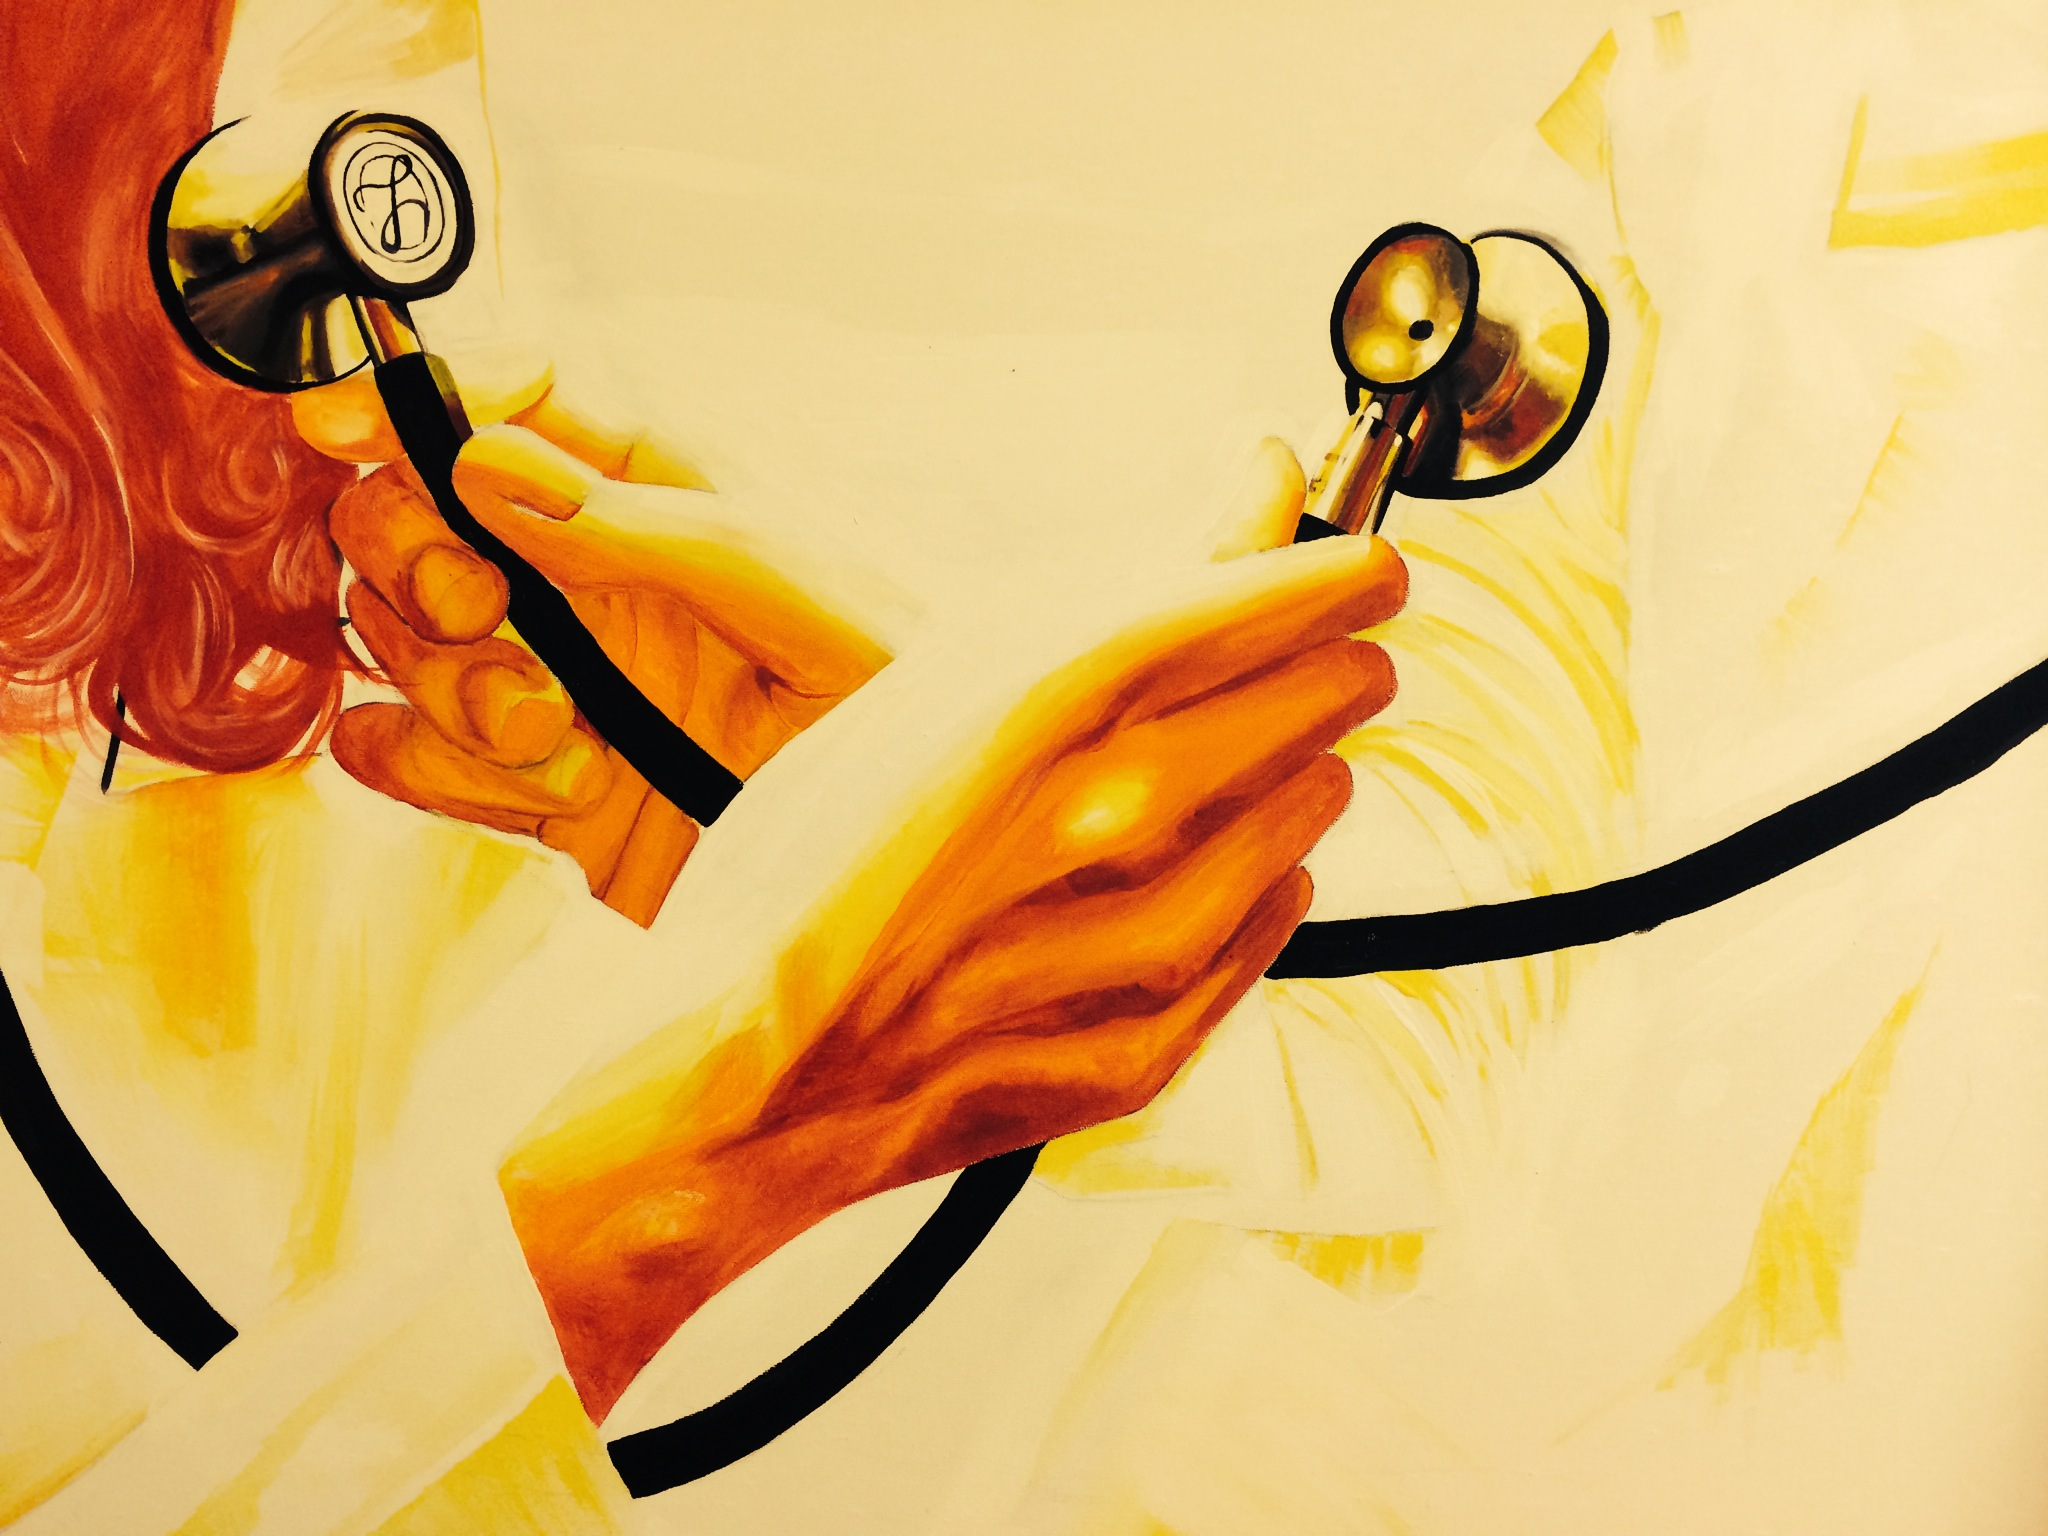 Download Wallpaper For Medical Students Gallery